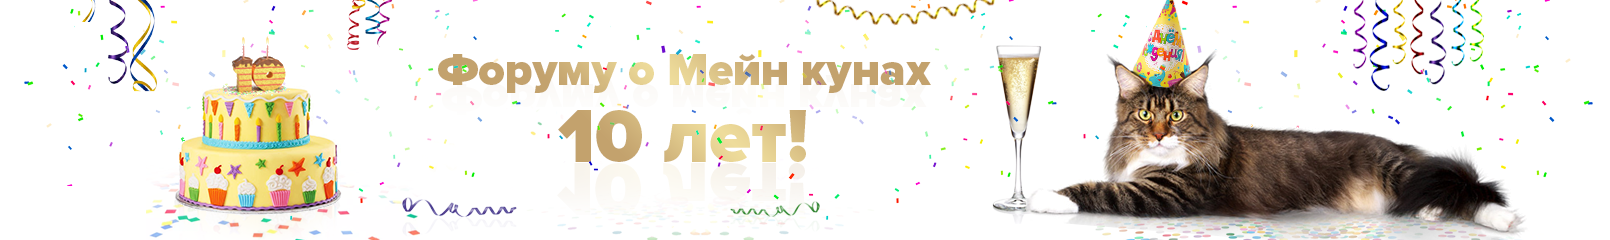 Форум о Мейн кунах - Powered by vBulletin